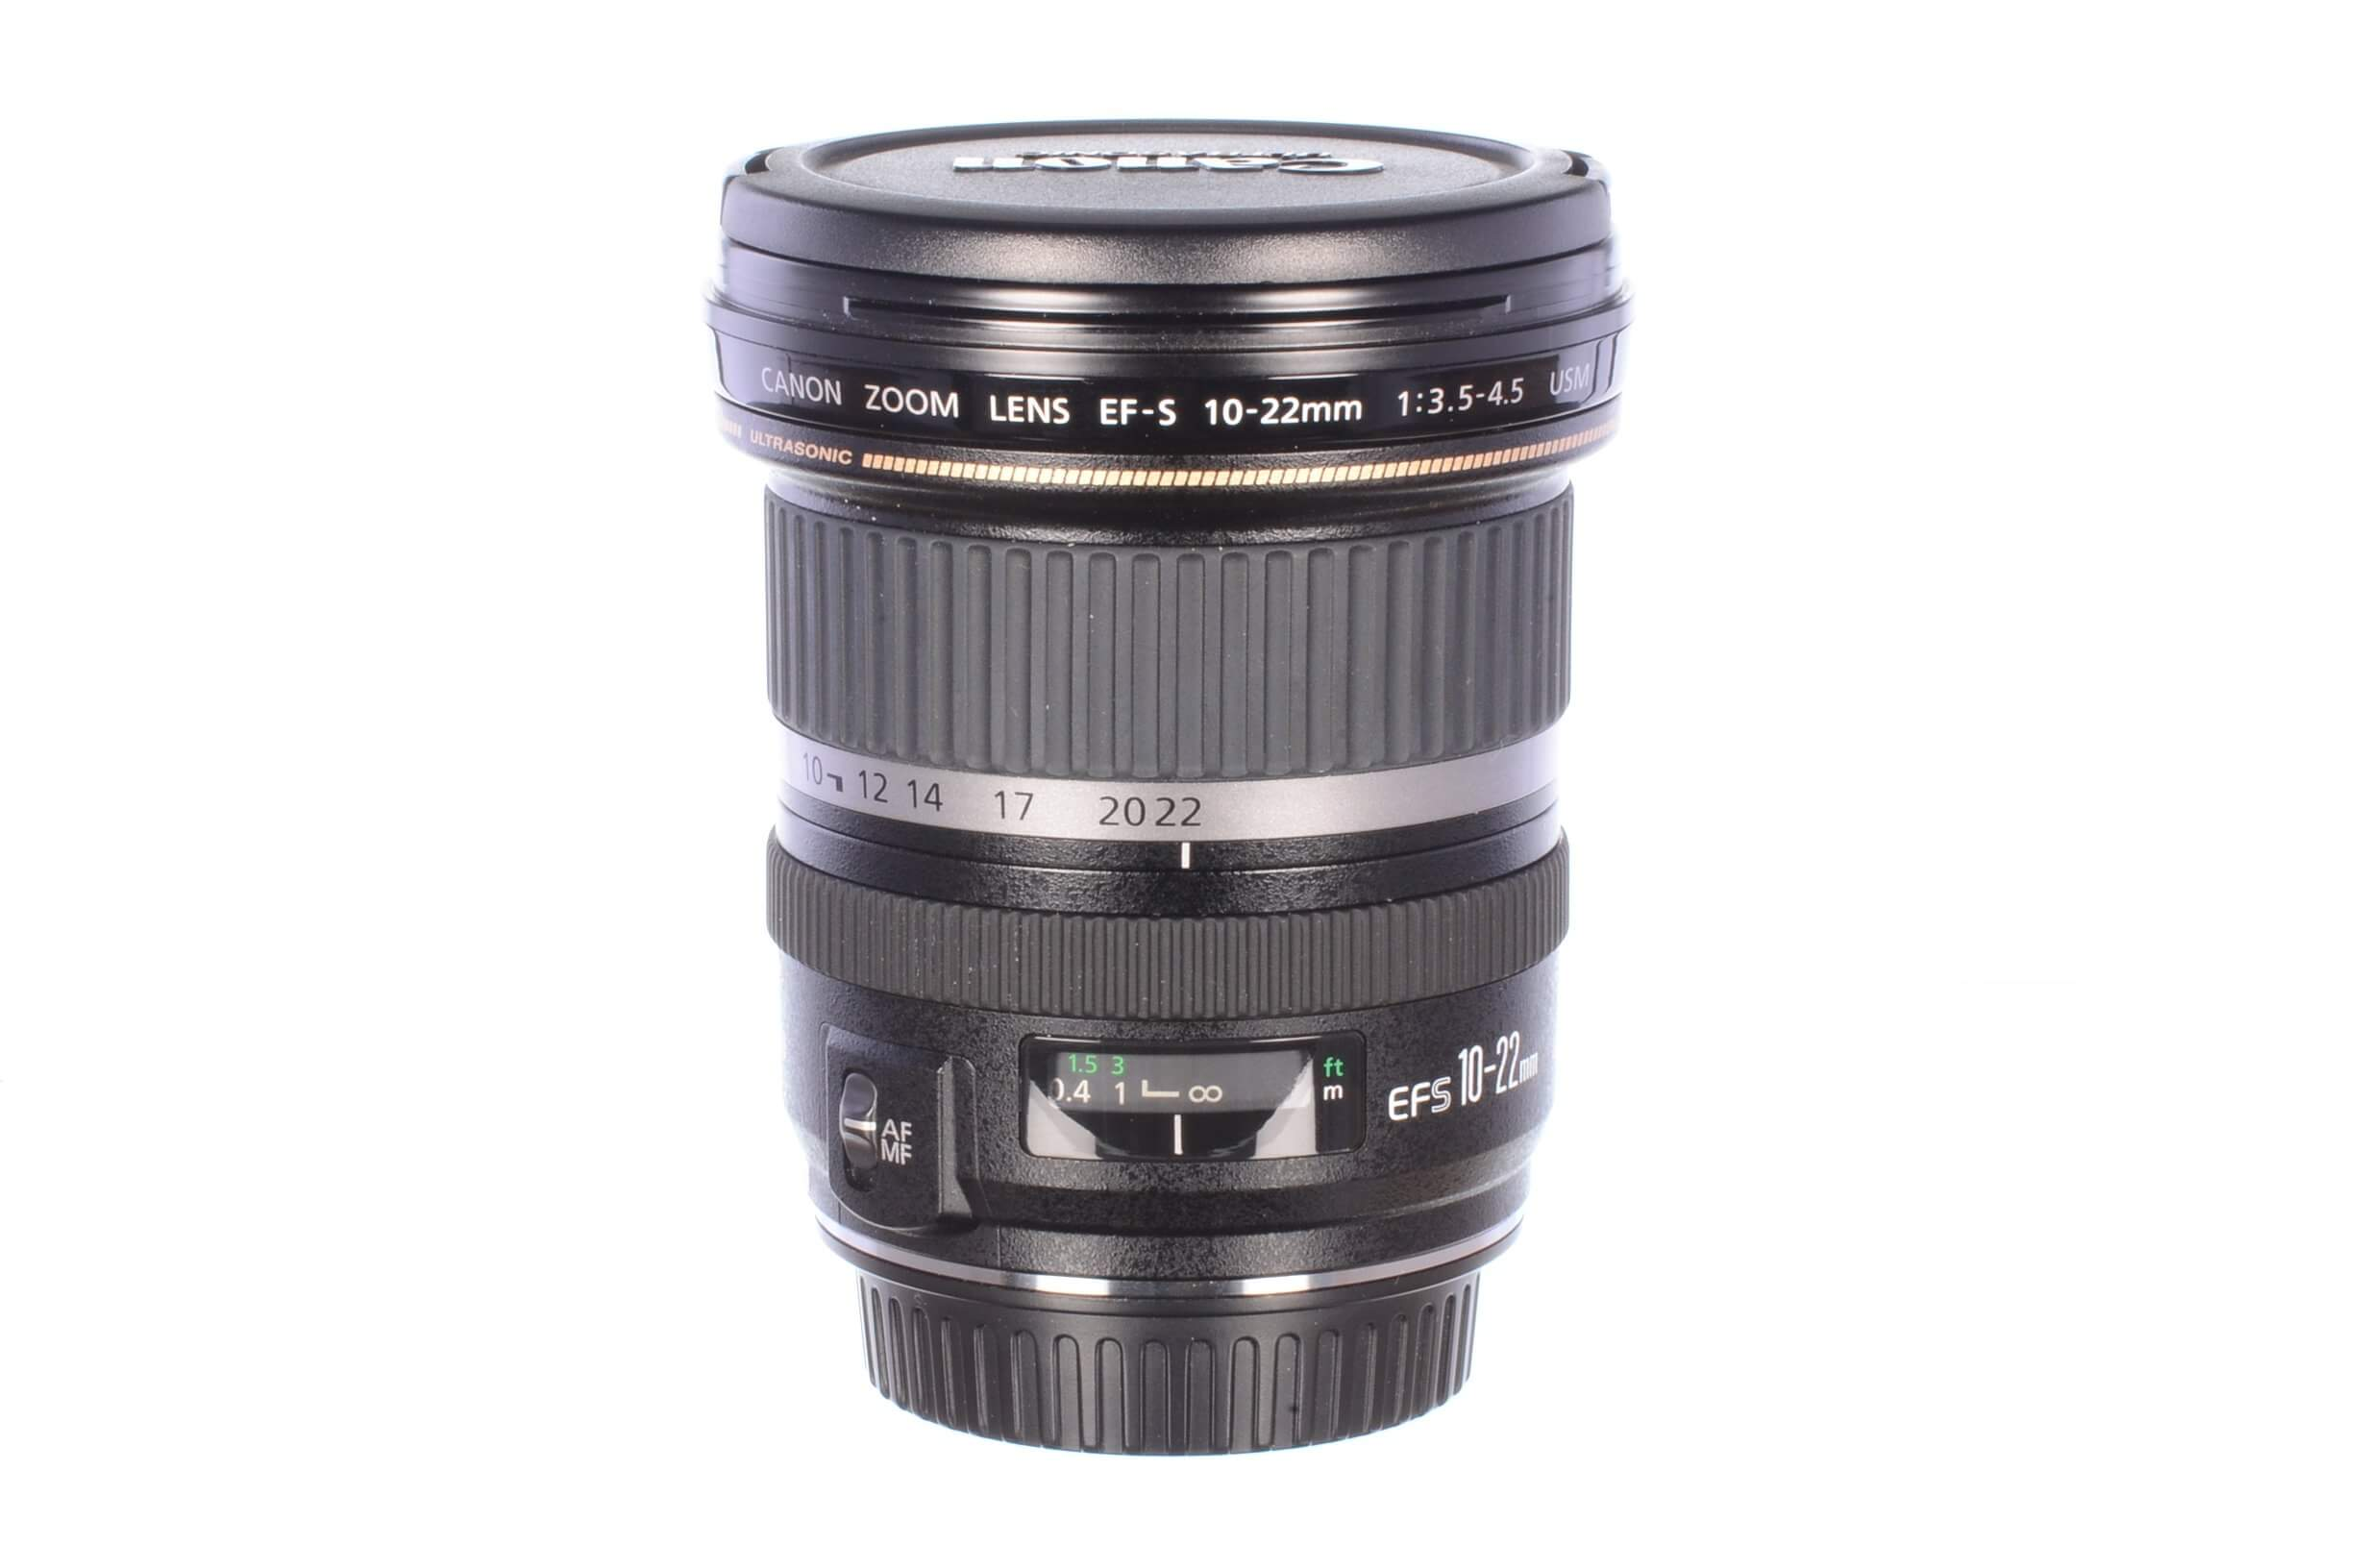 Canon 10-22mm f3.5-4.5 EFS USM, boxed, MINT!